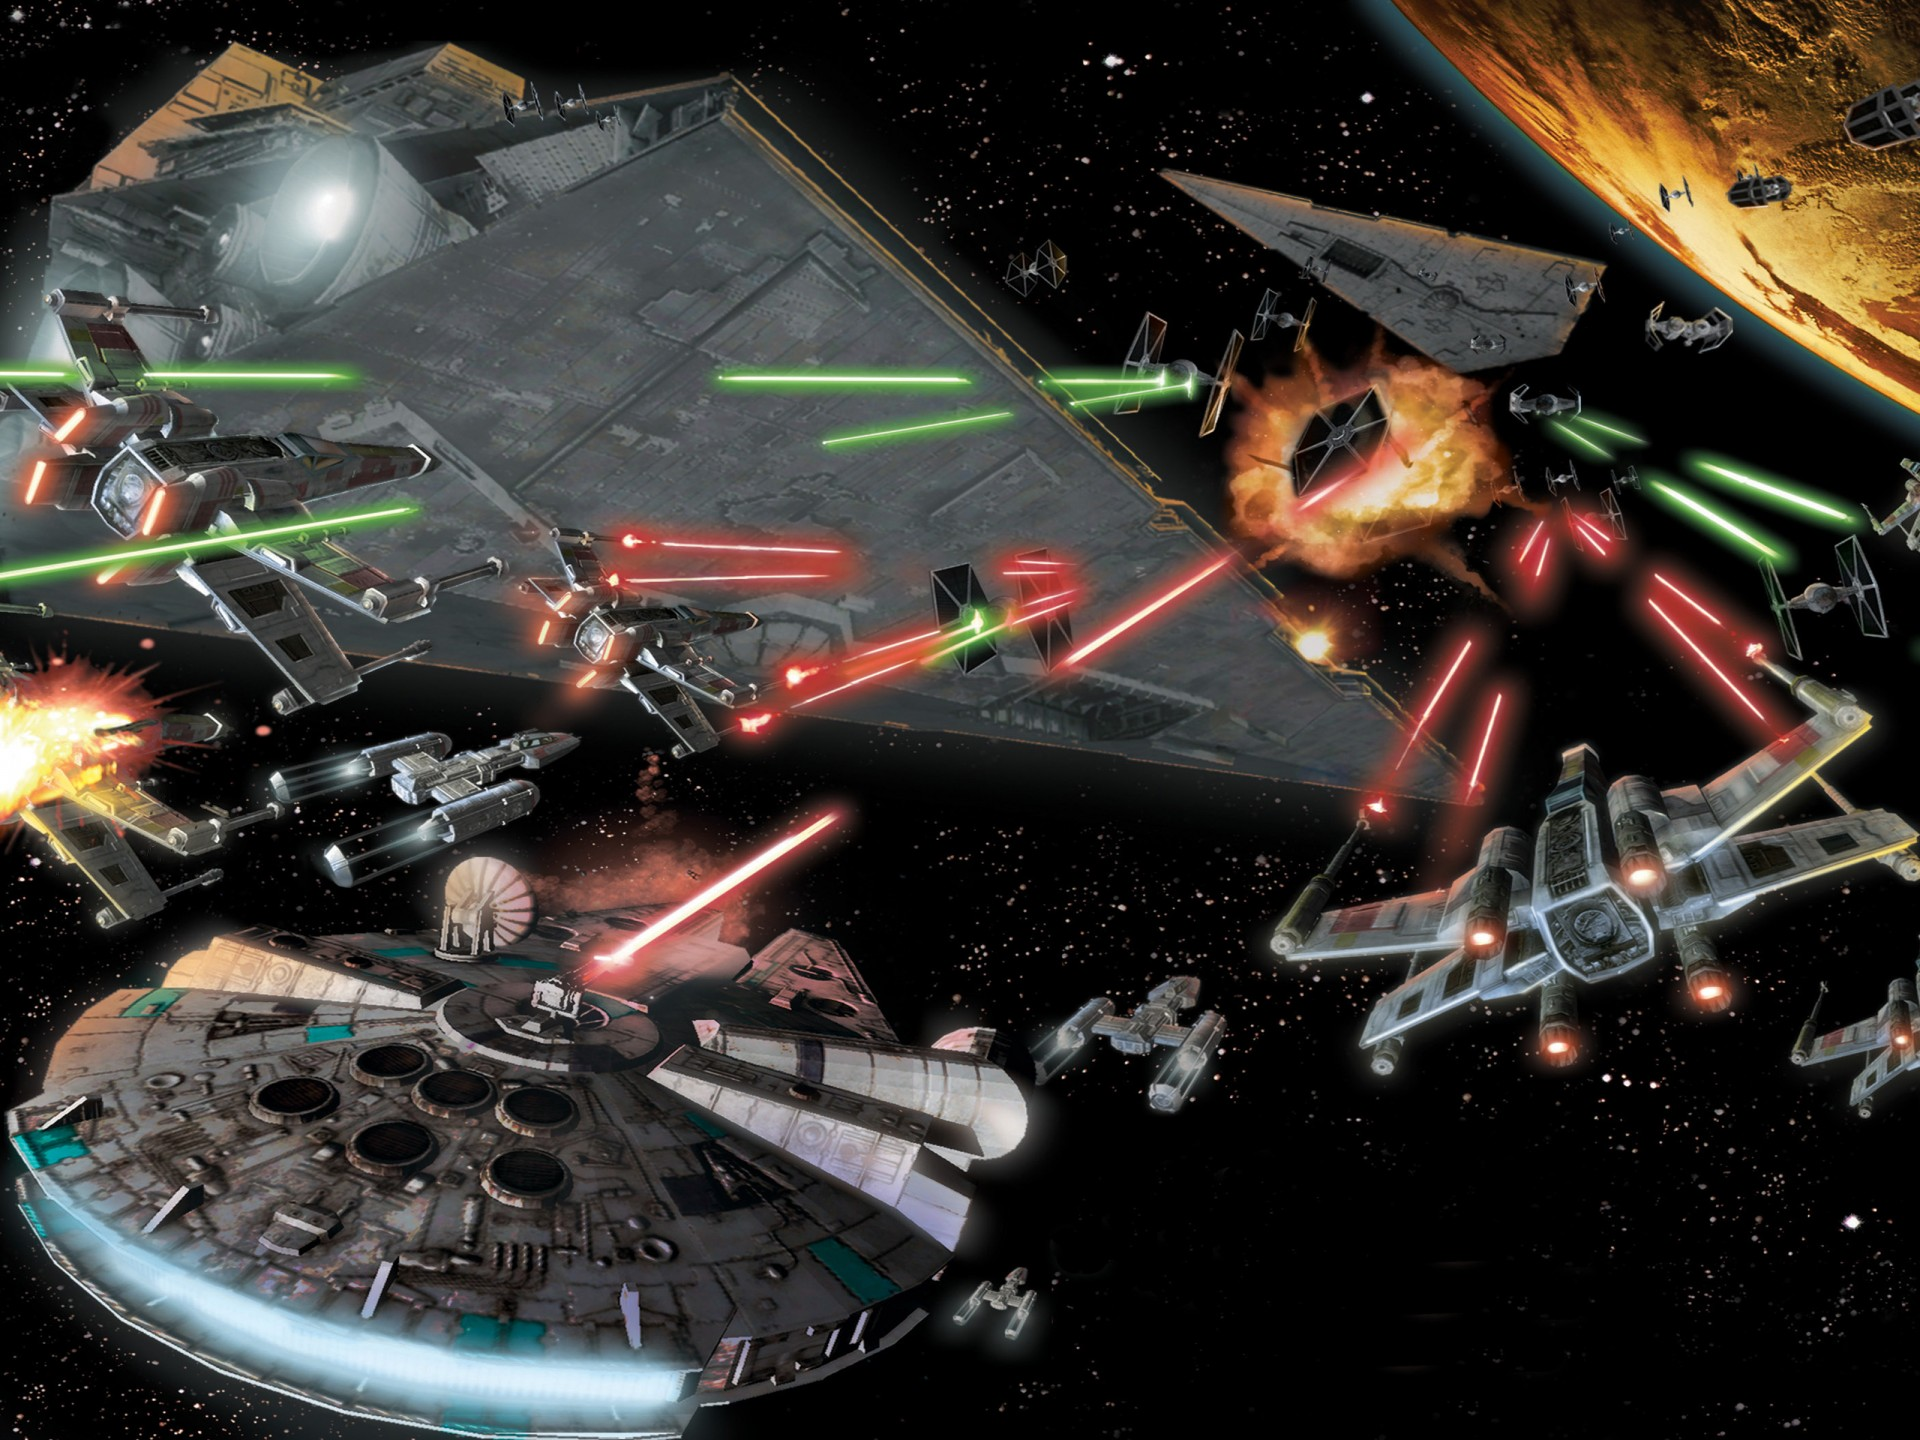 Star-Wars-Space-Battle-in-space-space-combat-aircraft-laser-shots-adventure-film-Video-Games-1920x1440